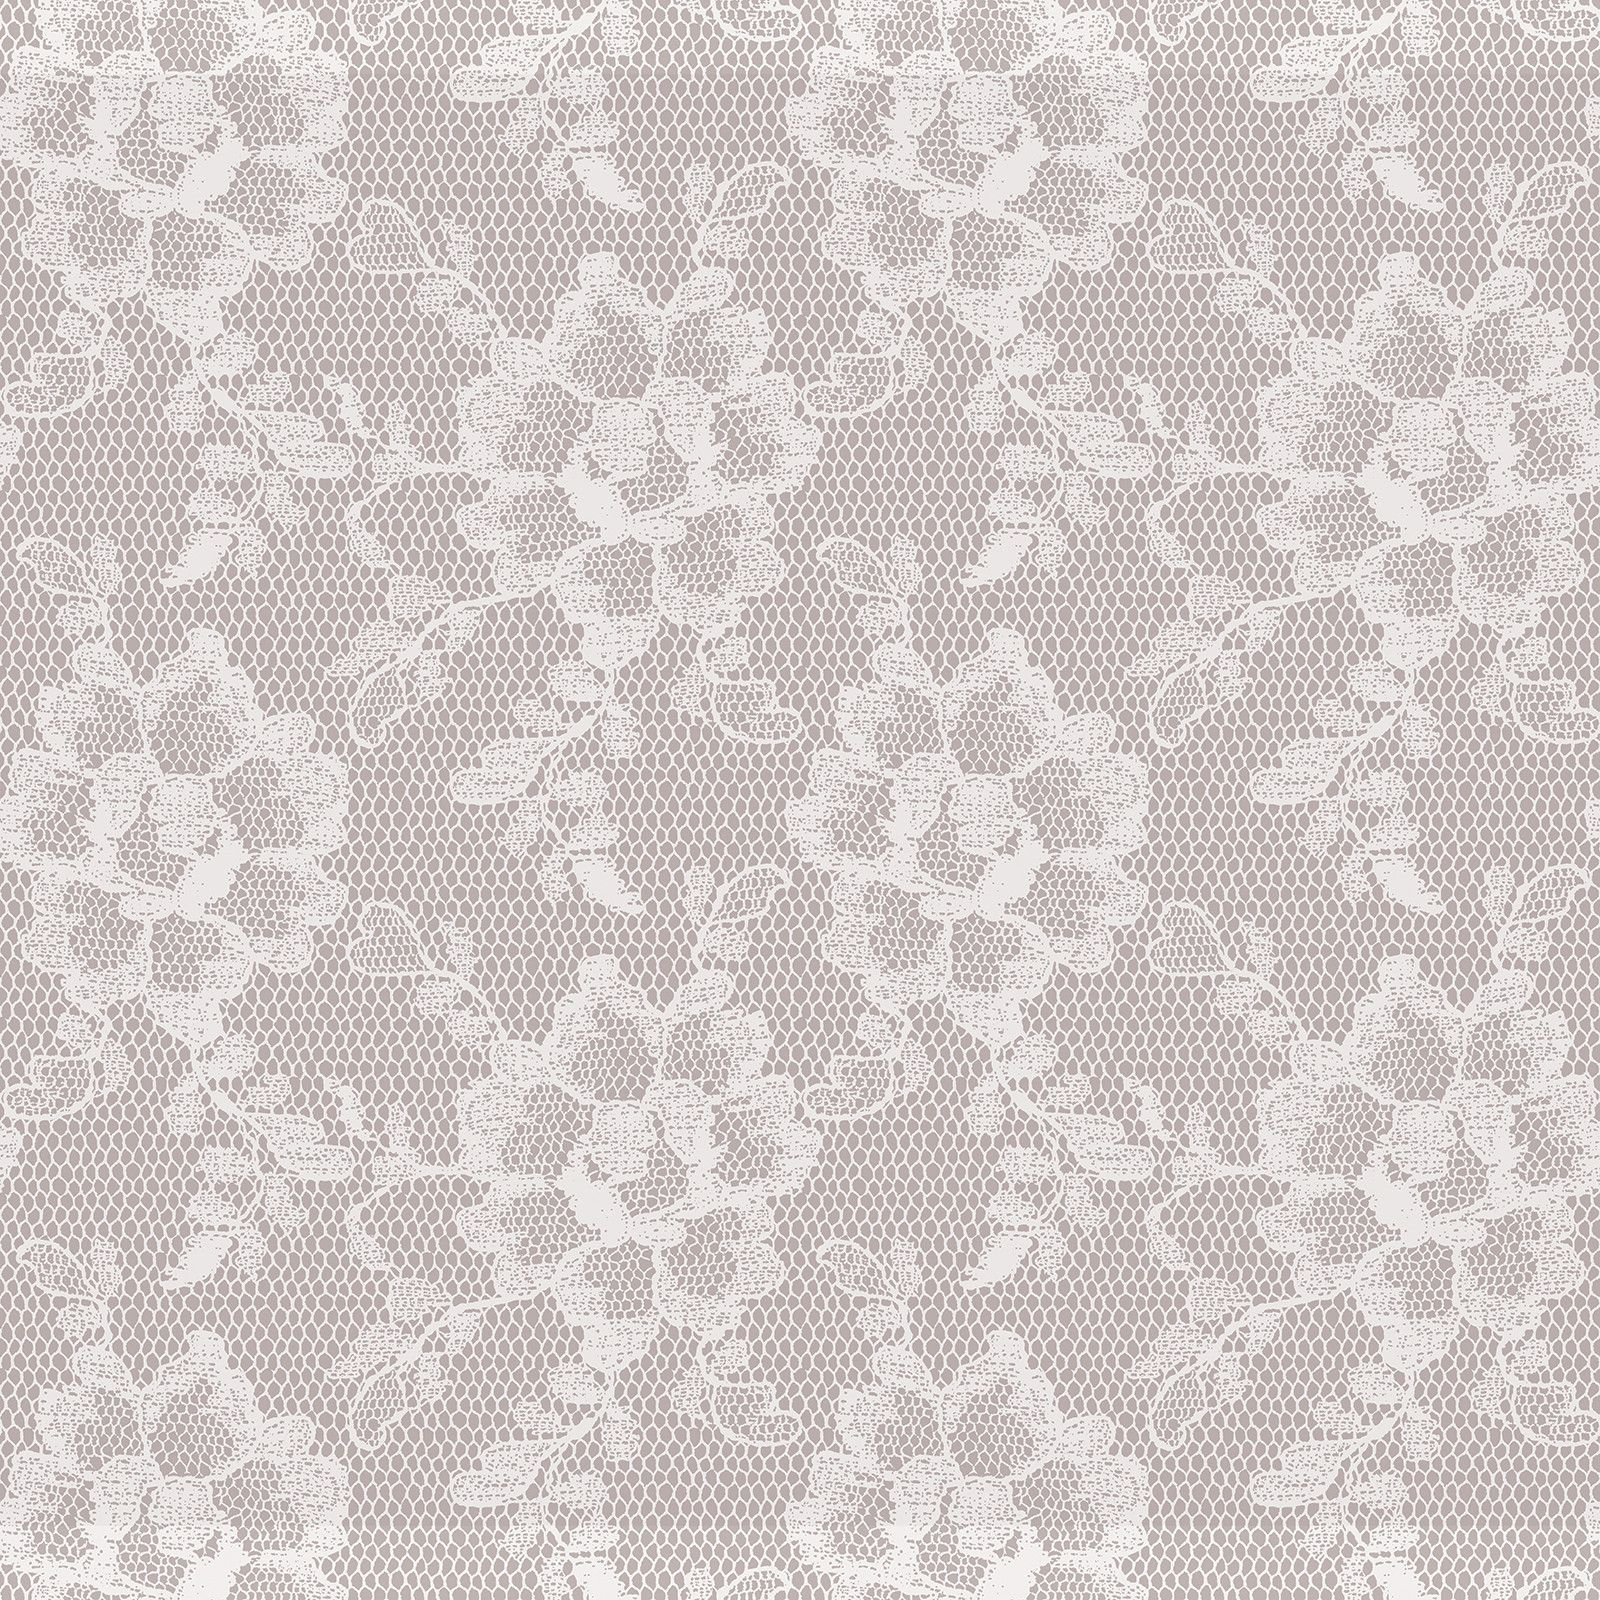 Sample Lace Textured Self Adhesive Wallpaper In White Chocolate Design By Tempaper Lace Wallpaper Textured Wallpaper Modern Wallpaper Designs